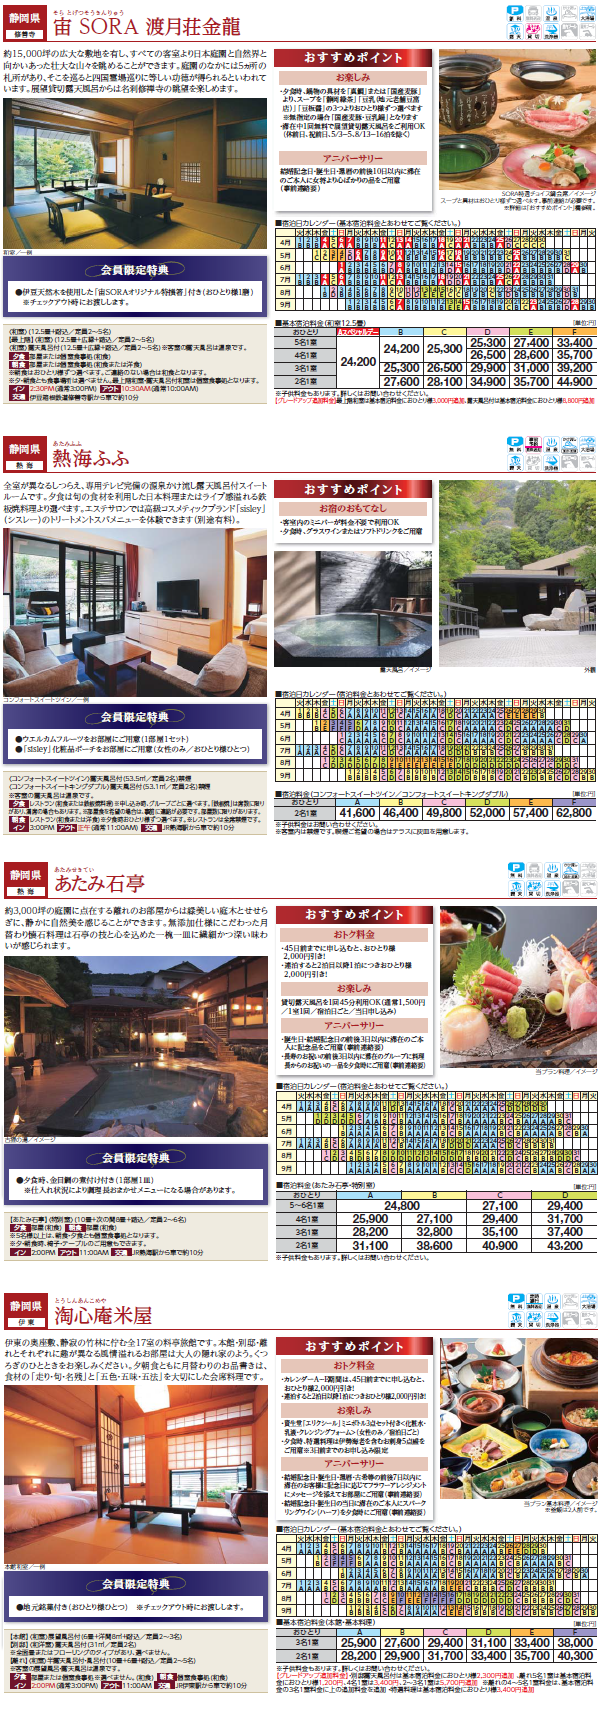 stay_plan_ryokan_1403_9